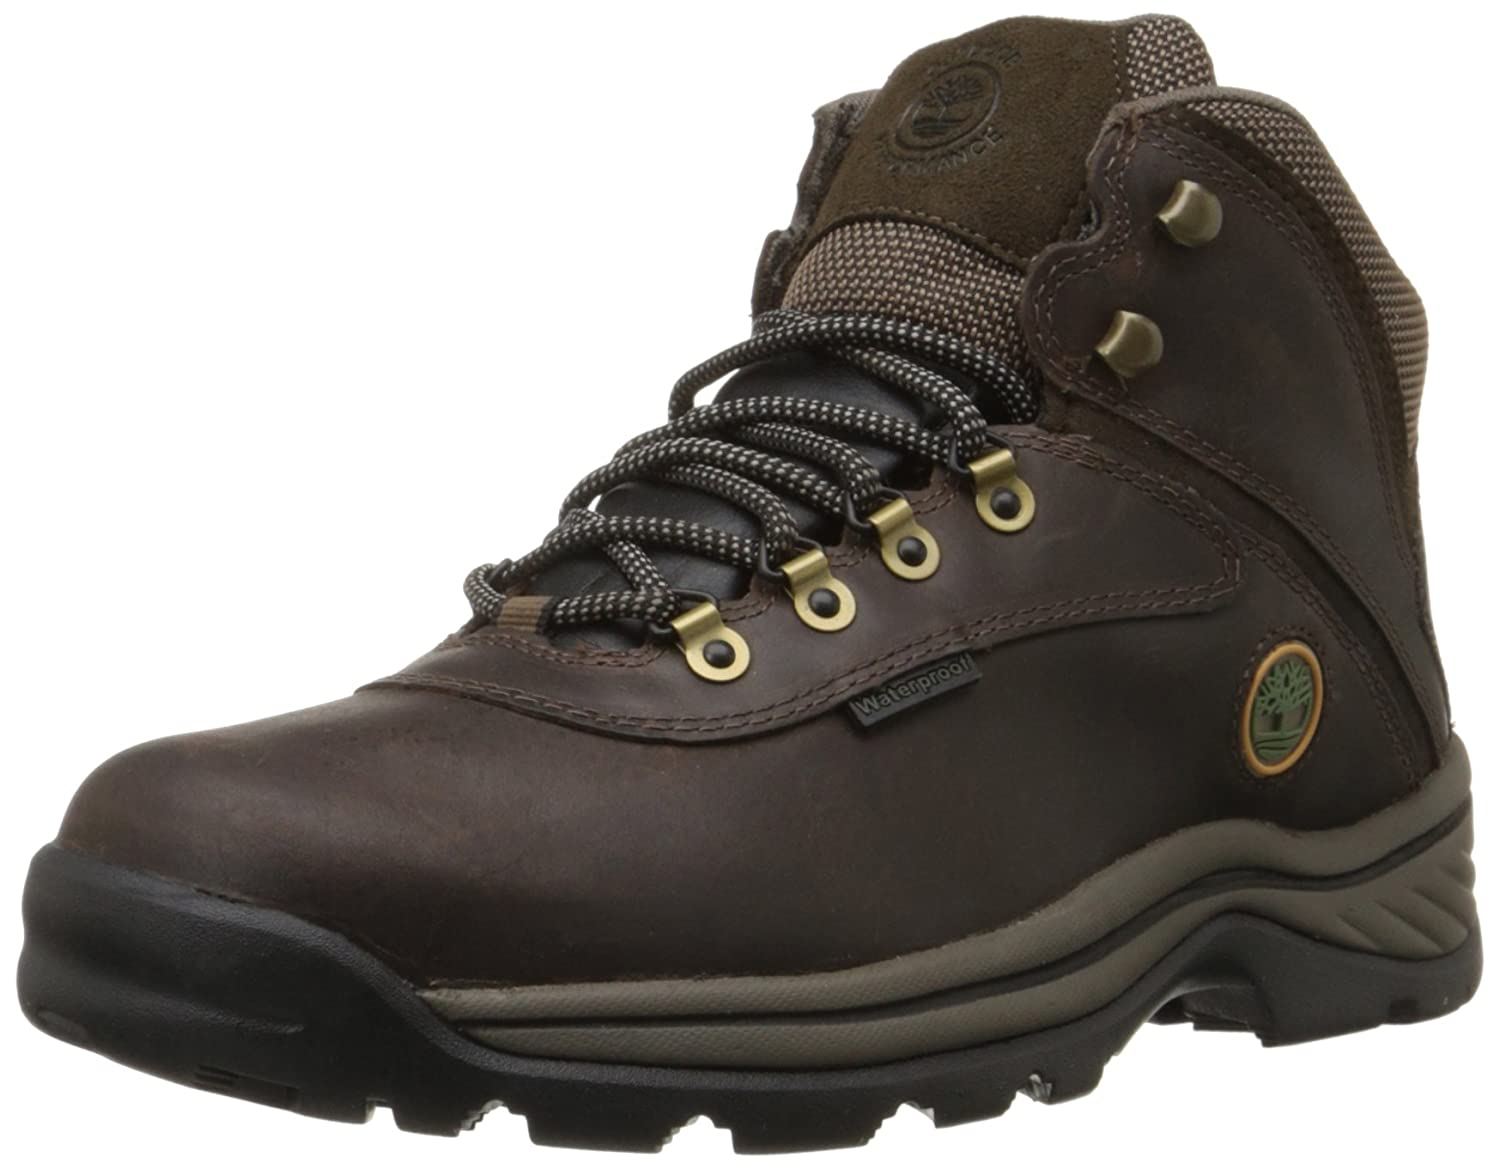 a8c87515 Amazon.com | Timberland Men's White Ledge Mid Waterproof Ankle Boot |  Hiking Boots